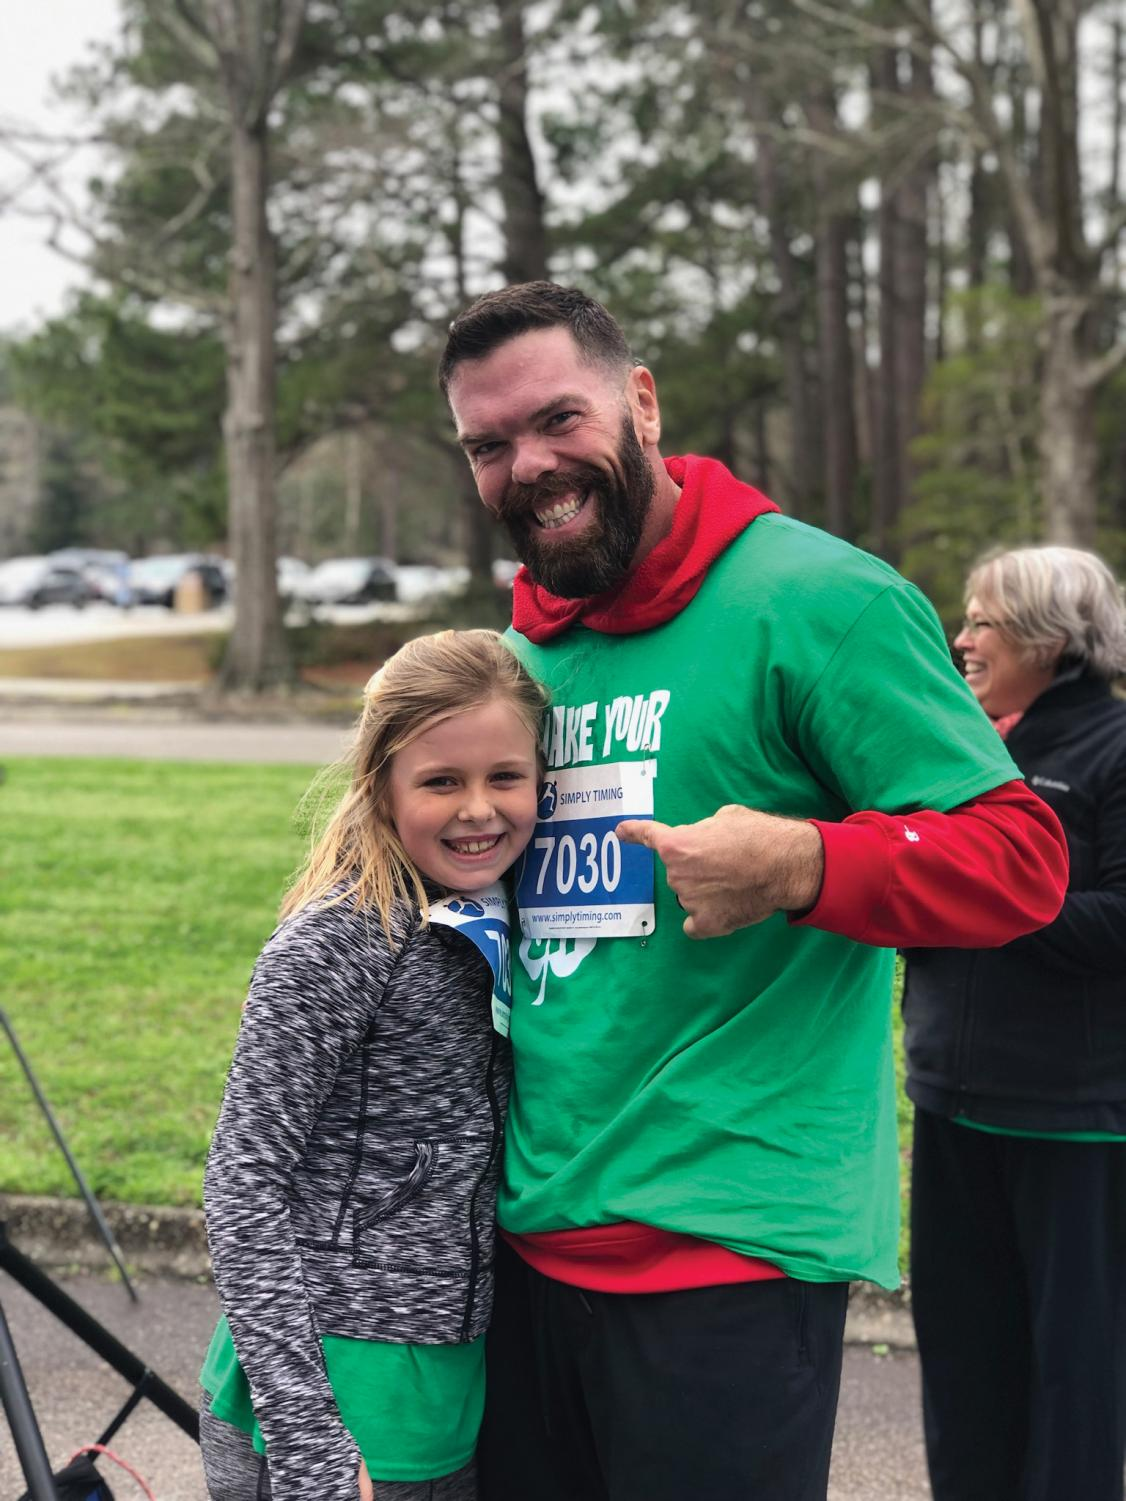 Brian Edwards, one of the winners of the 5K, poses with his daughter, Vivian Edwards.